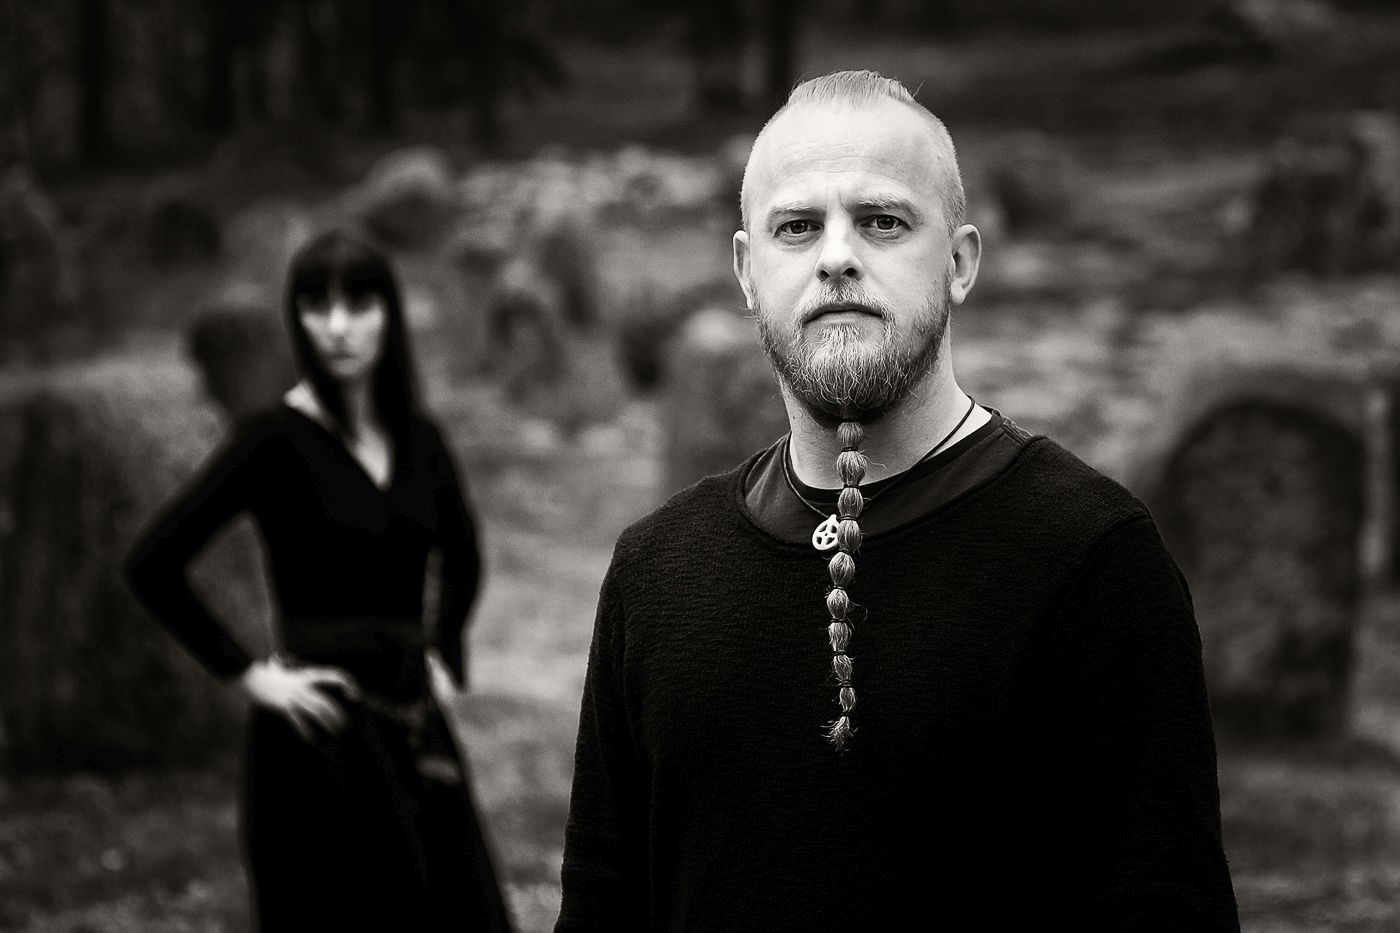 wardruna 2016 espen winther 01 bw web